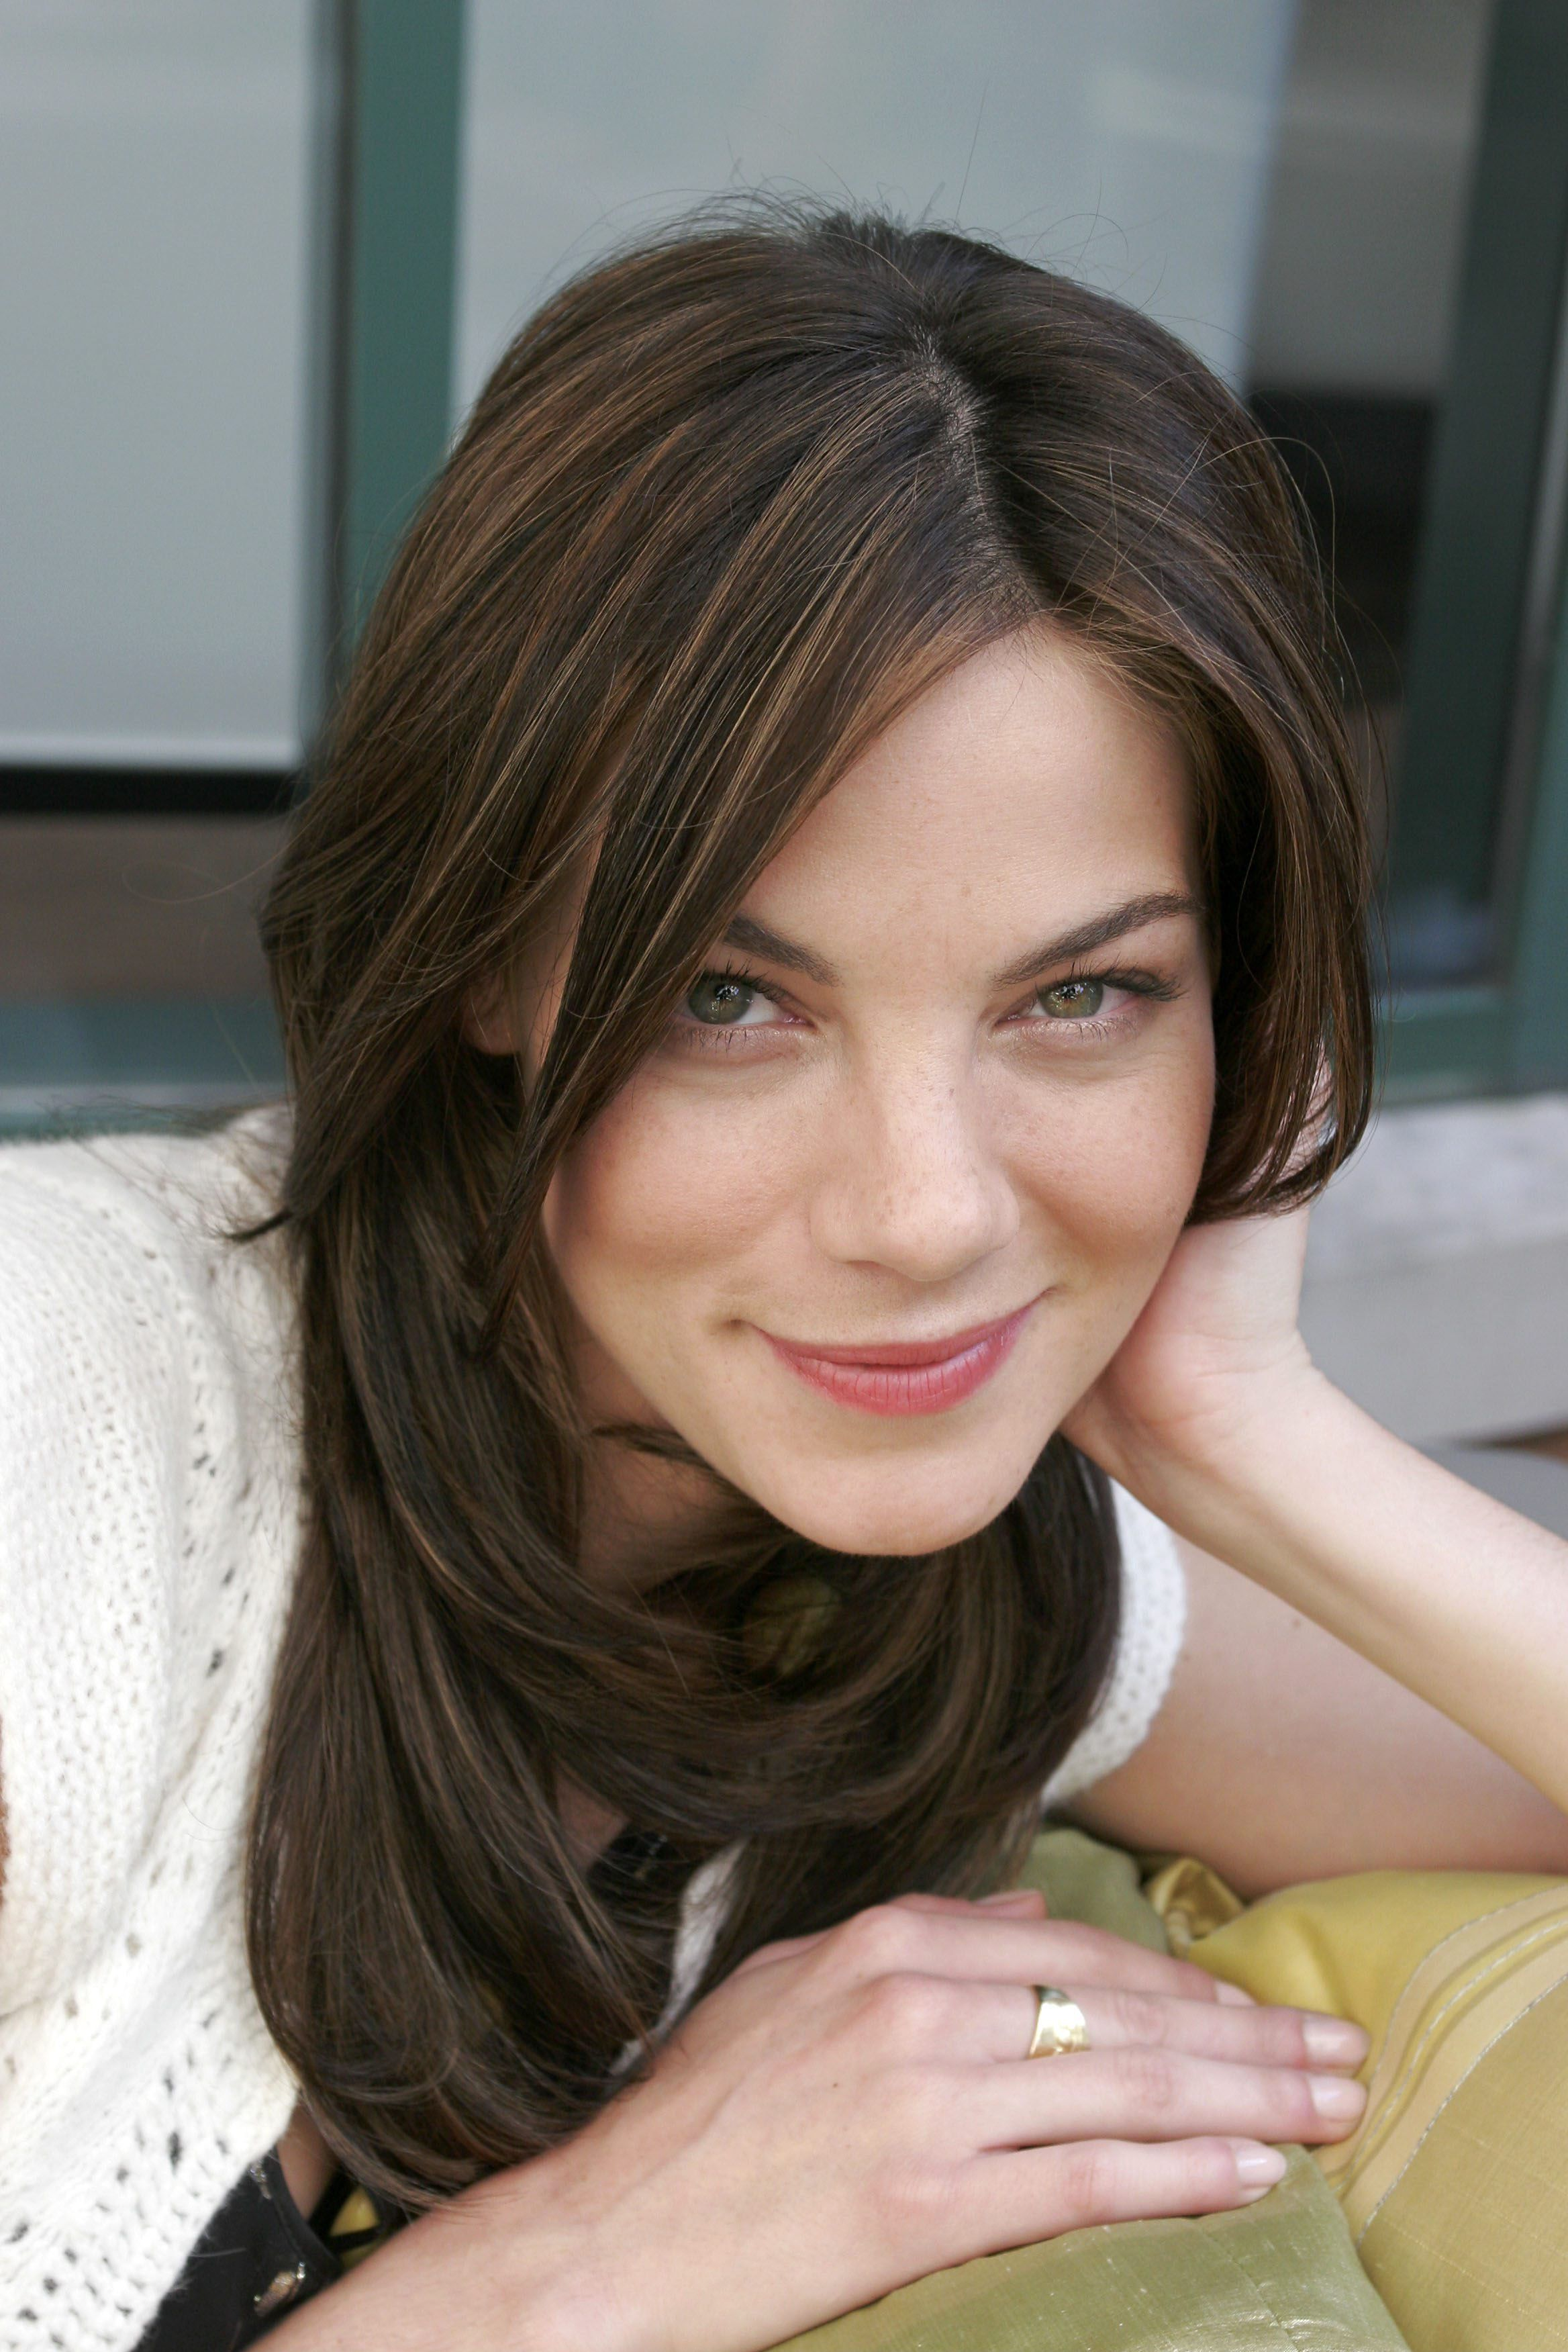 michelle monaghan dated who